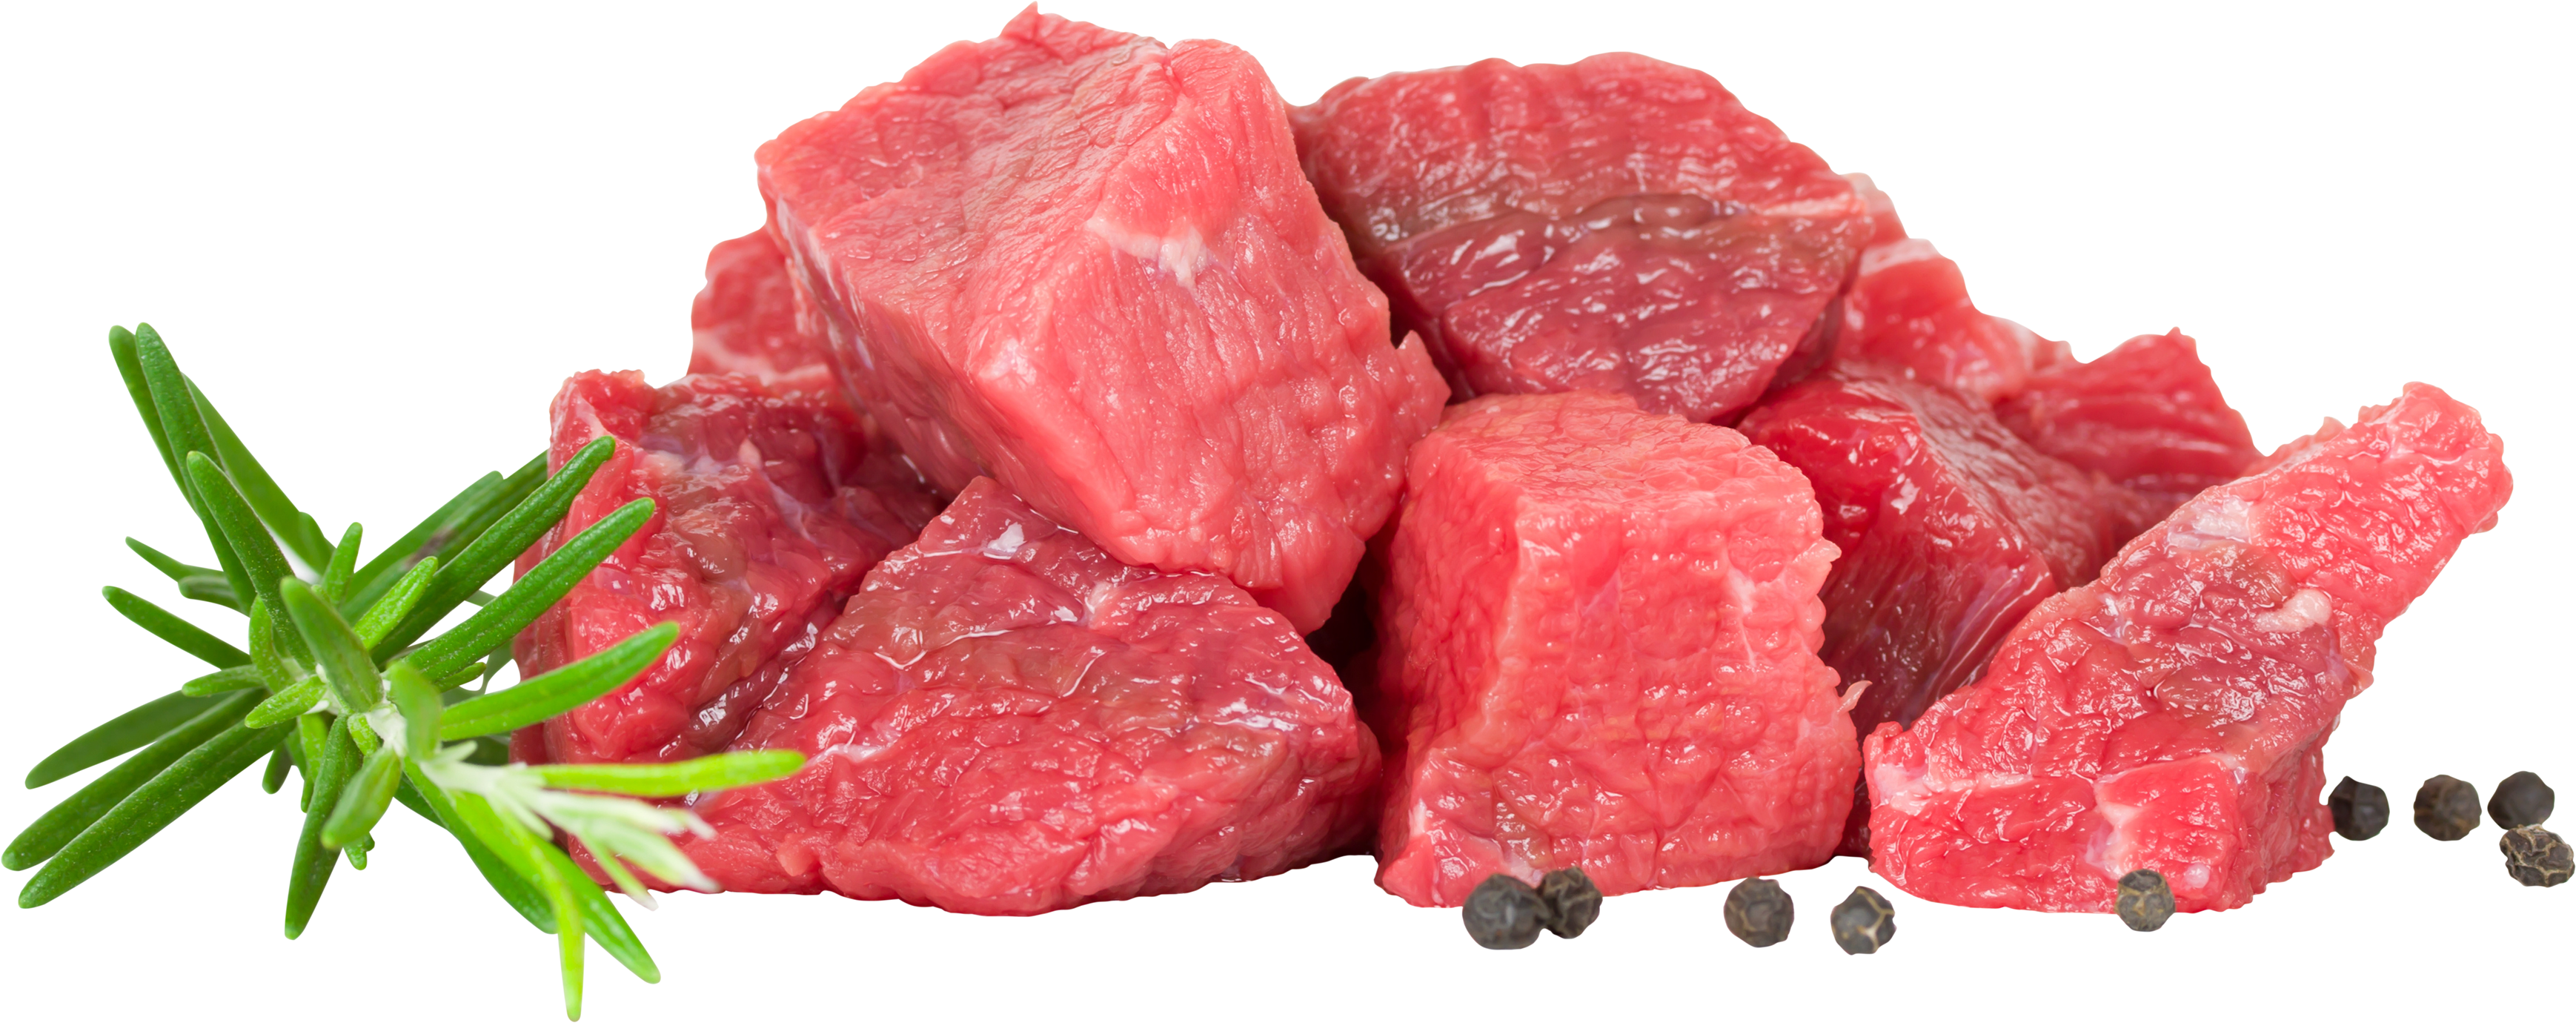 Meat PNG Free Download